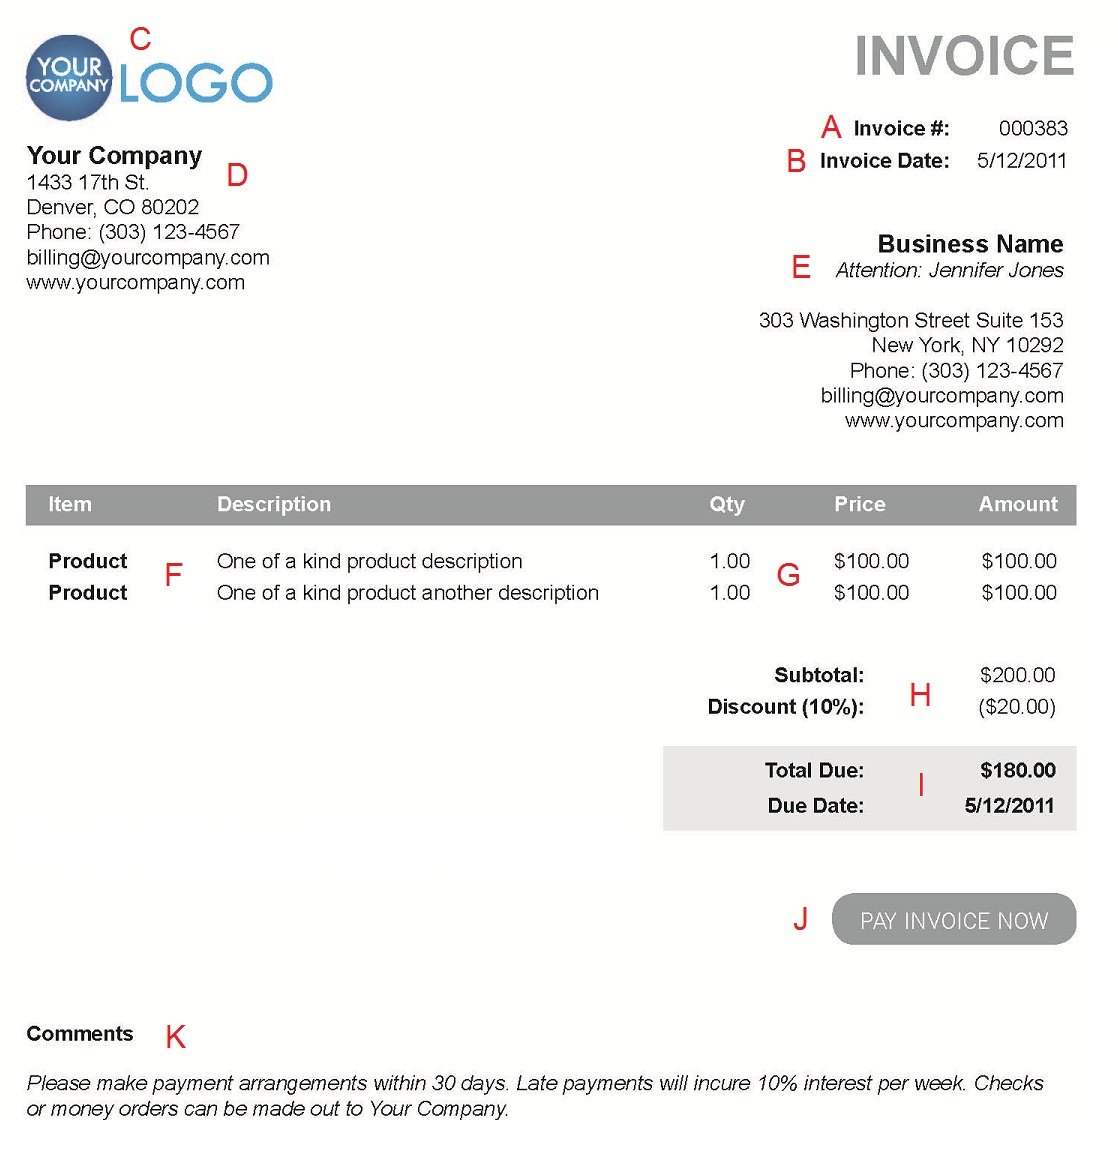 Imagerackus  Marvelous The  Different Sections Of An Electronic Payment Invoice With Excellent A  With Easy On The Eye Invoice Template Word Free Also Legal Invoice Template In Addition Planet Soho Invoices And Generic Invoice Template Word As Well As Fedex Duty And Tax Invoice Pay Online Additionally Online Invoicing System From Paysimplecom With Imagerackus  Excellent The  Different Sections Of An Electronic Payment Invoice With Easy On The Eye A  And Marvelous Invoice Template Word Free Also Legal Invoice Template In Addition Planet Soho Invoices From Paysimplecom